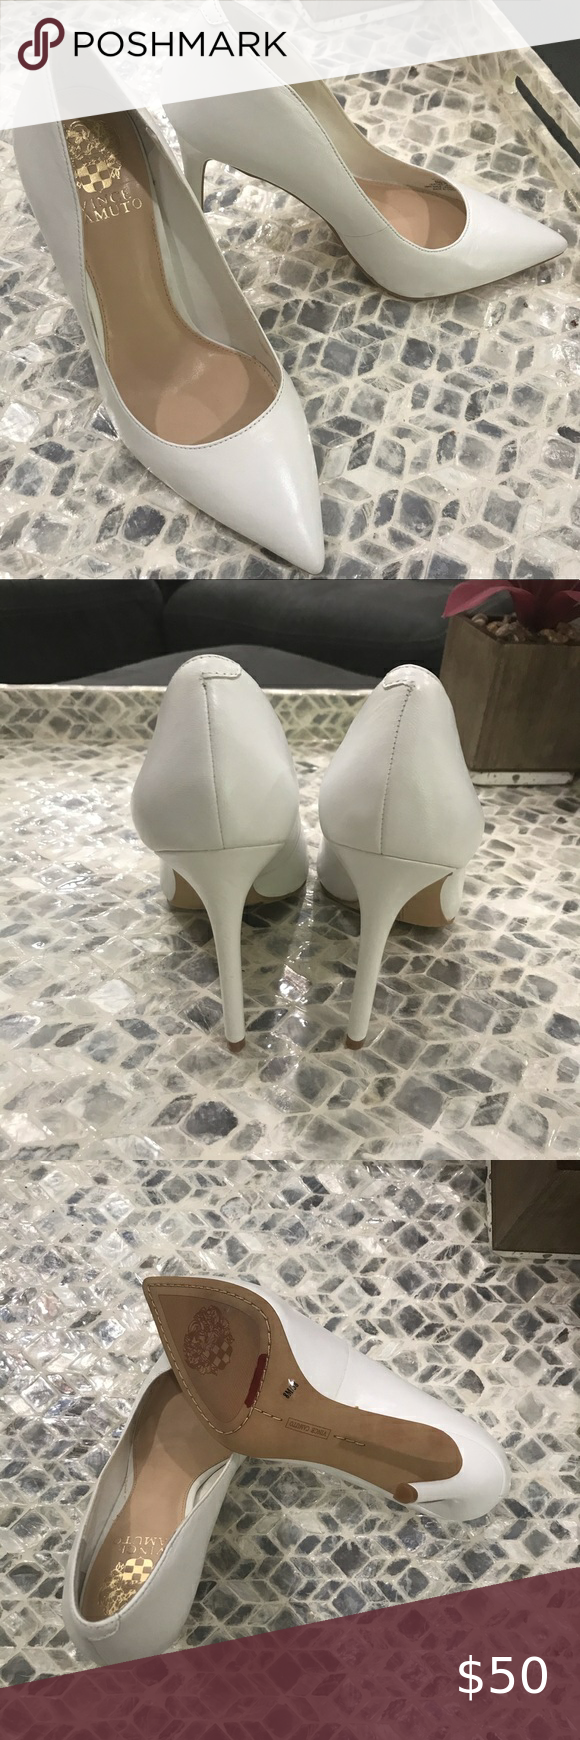 Vince Camuto white pumps size 8 in 2020